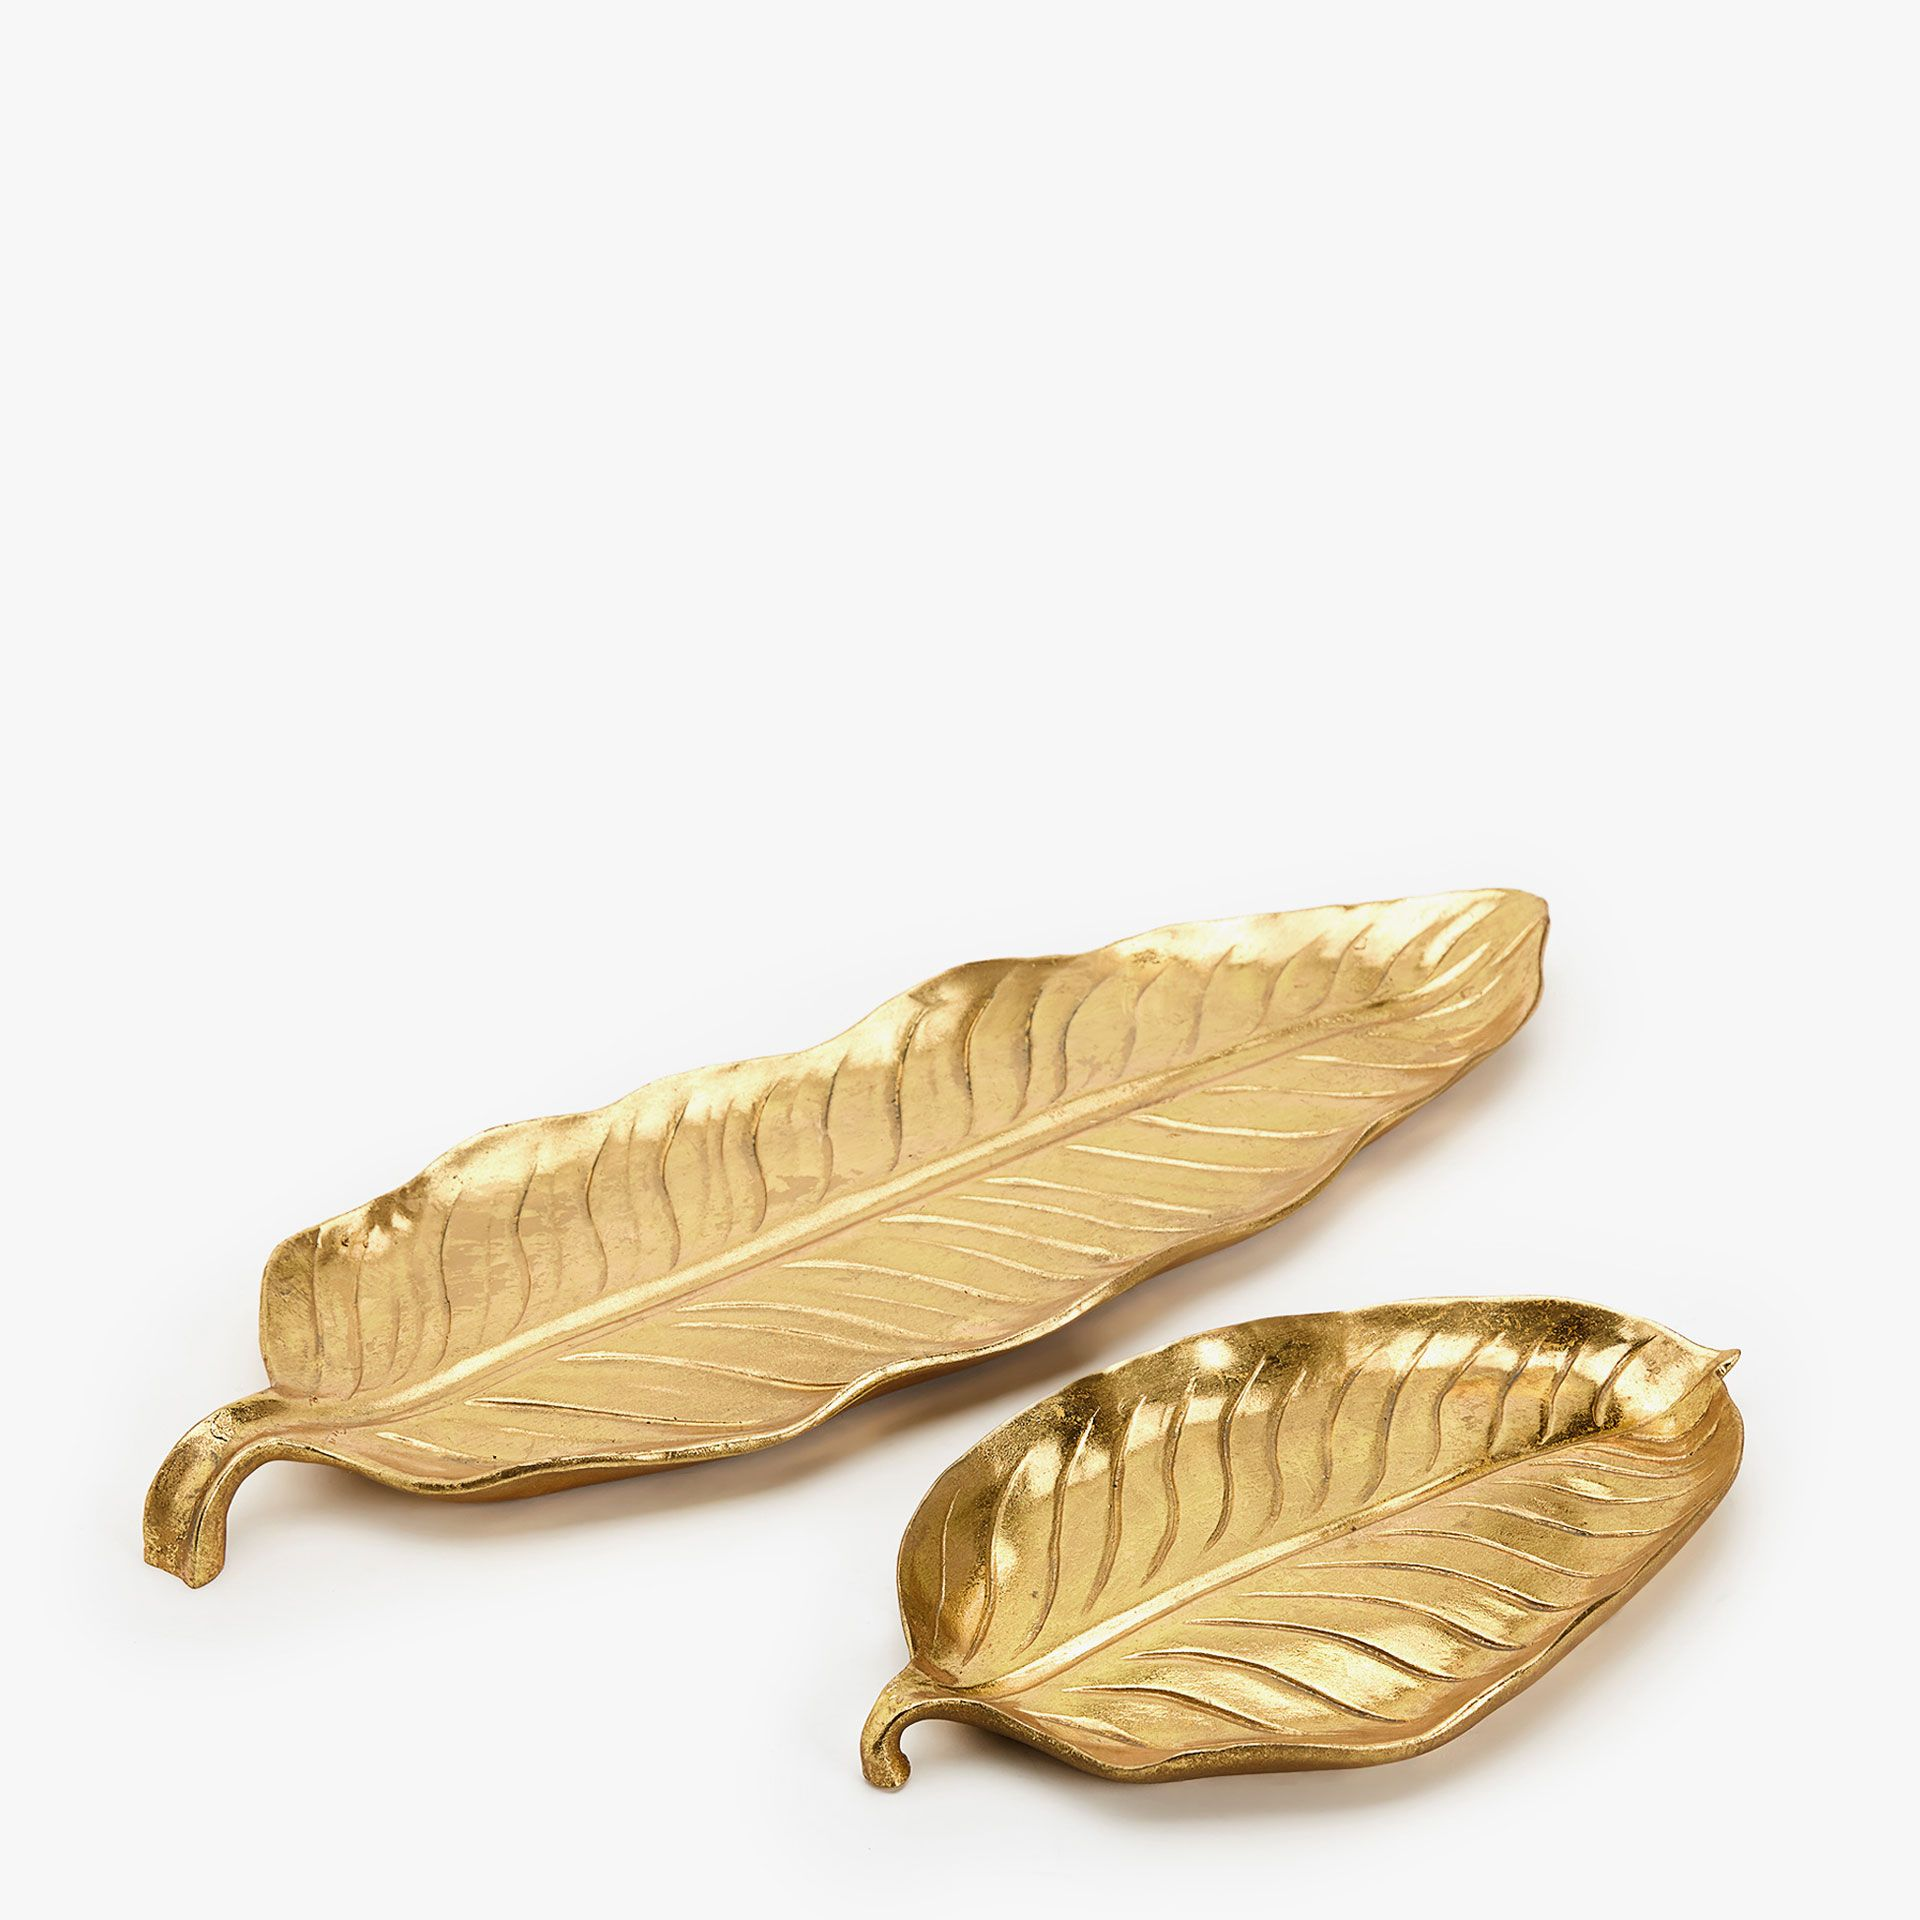 Image 1 of the product GOLD DECORATIVE LEAF TRAY   Desk Ideas ...